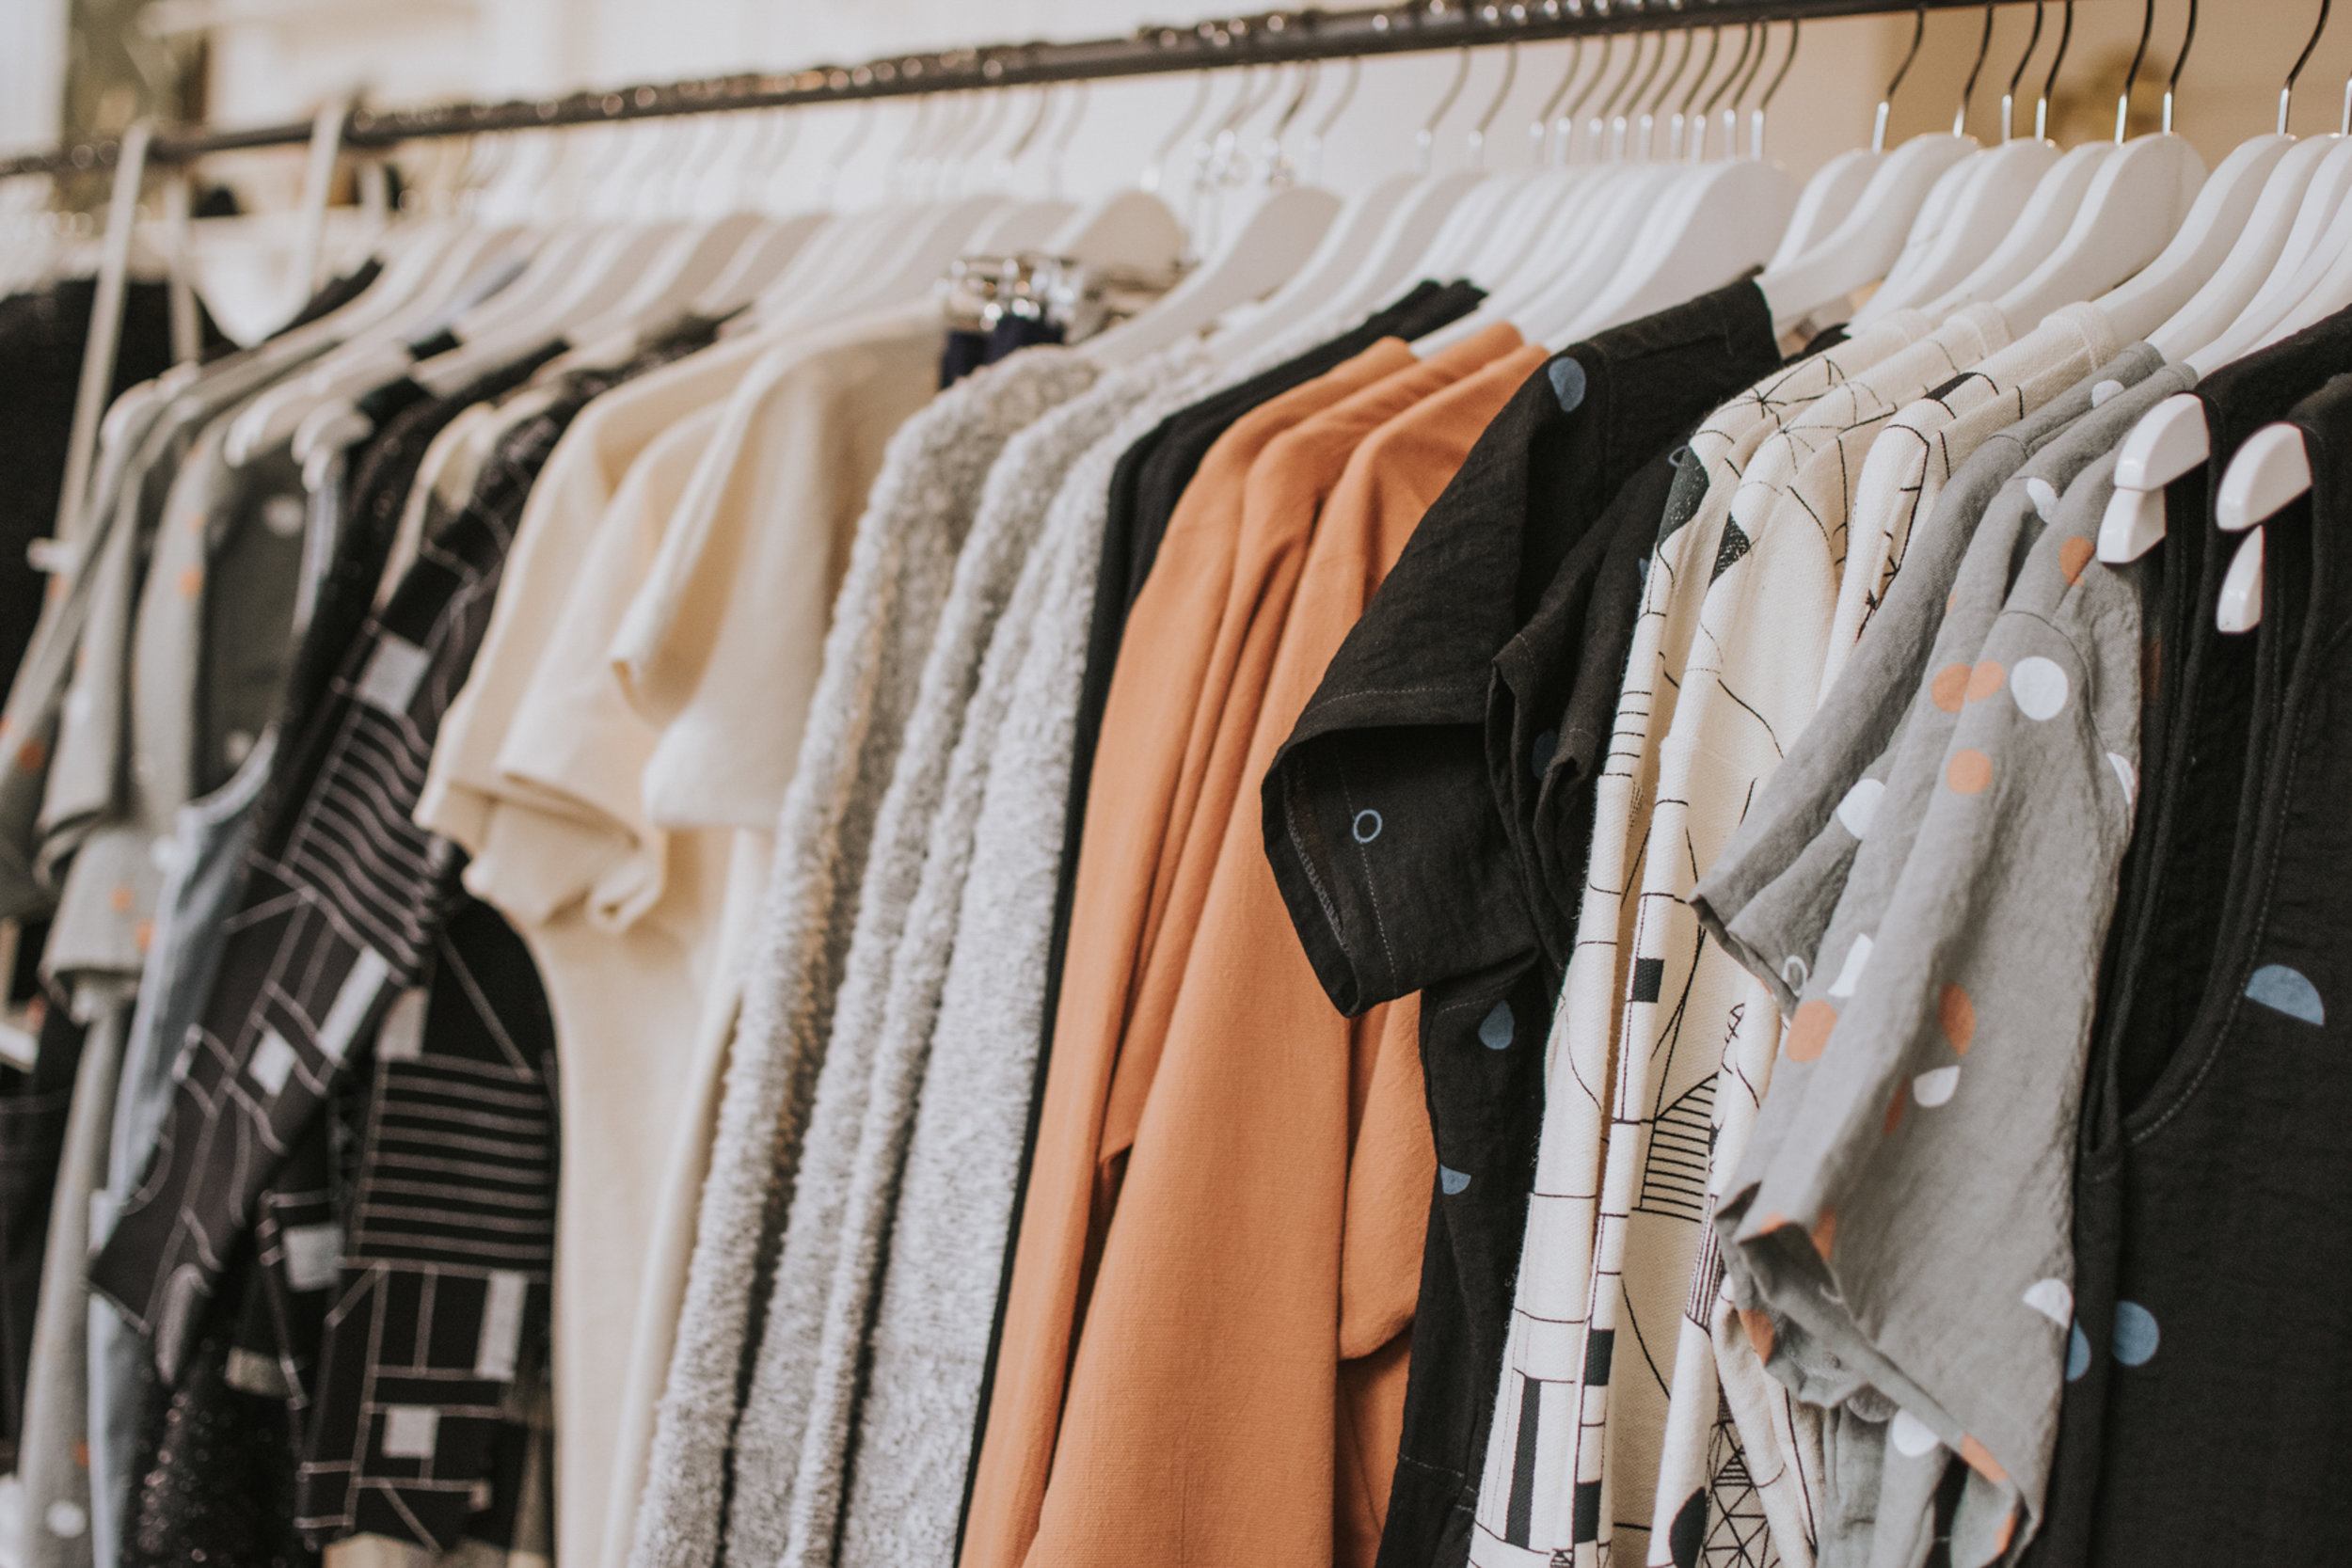 Textiles and Clothing Store - We offer import and export Contacts for a wide variety of Textiles and Clothing products. From textile and alpaca fabrics, to footwear.